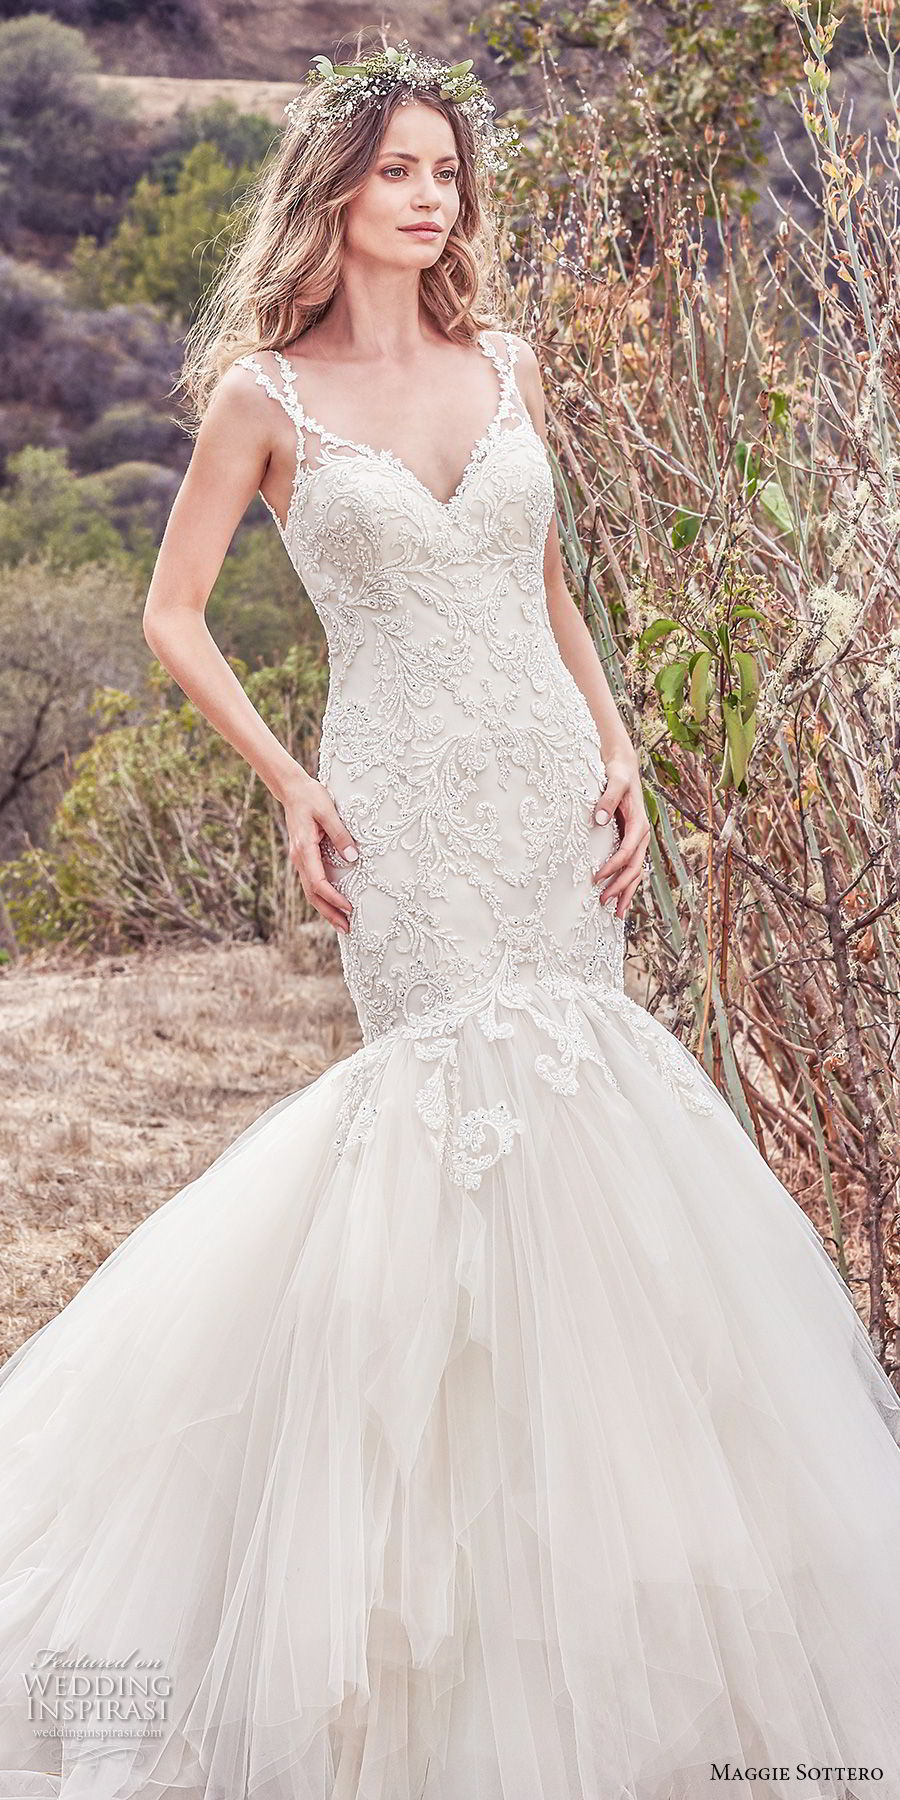 maggie sottero fall 2017 bridal sleeveless with strap sweetheart neckline heavily embellished bodice elegant mermaid wedding dress open scoop back chapel train (610) mv